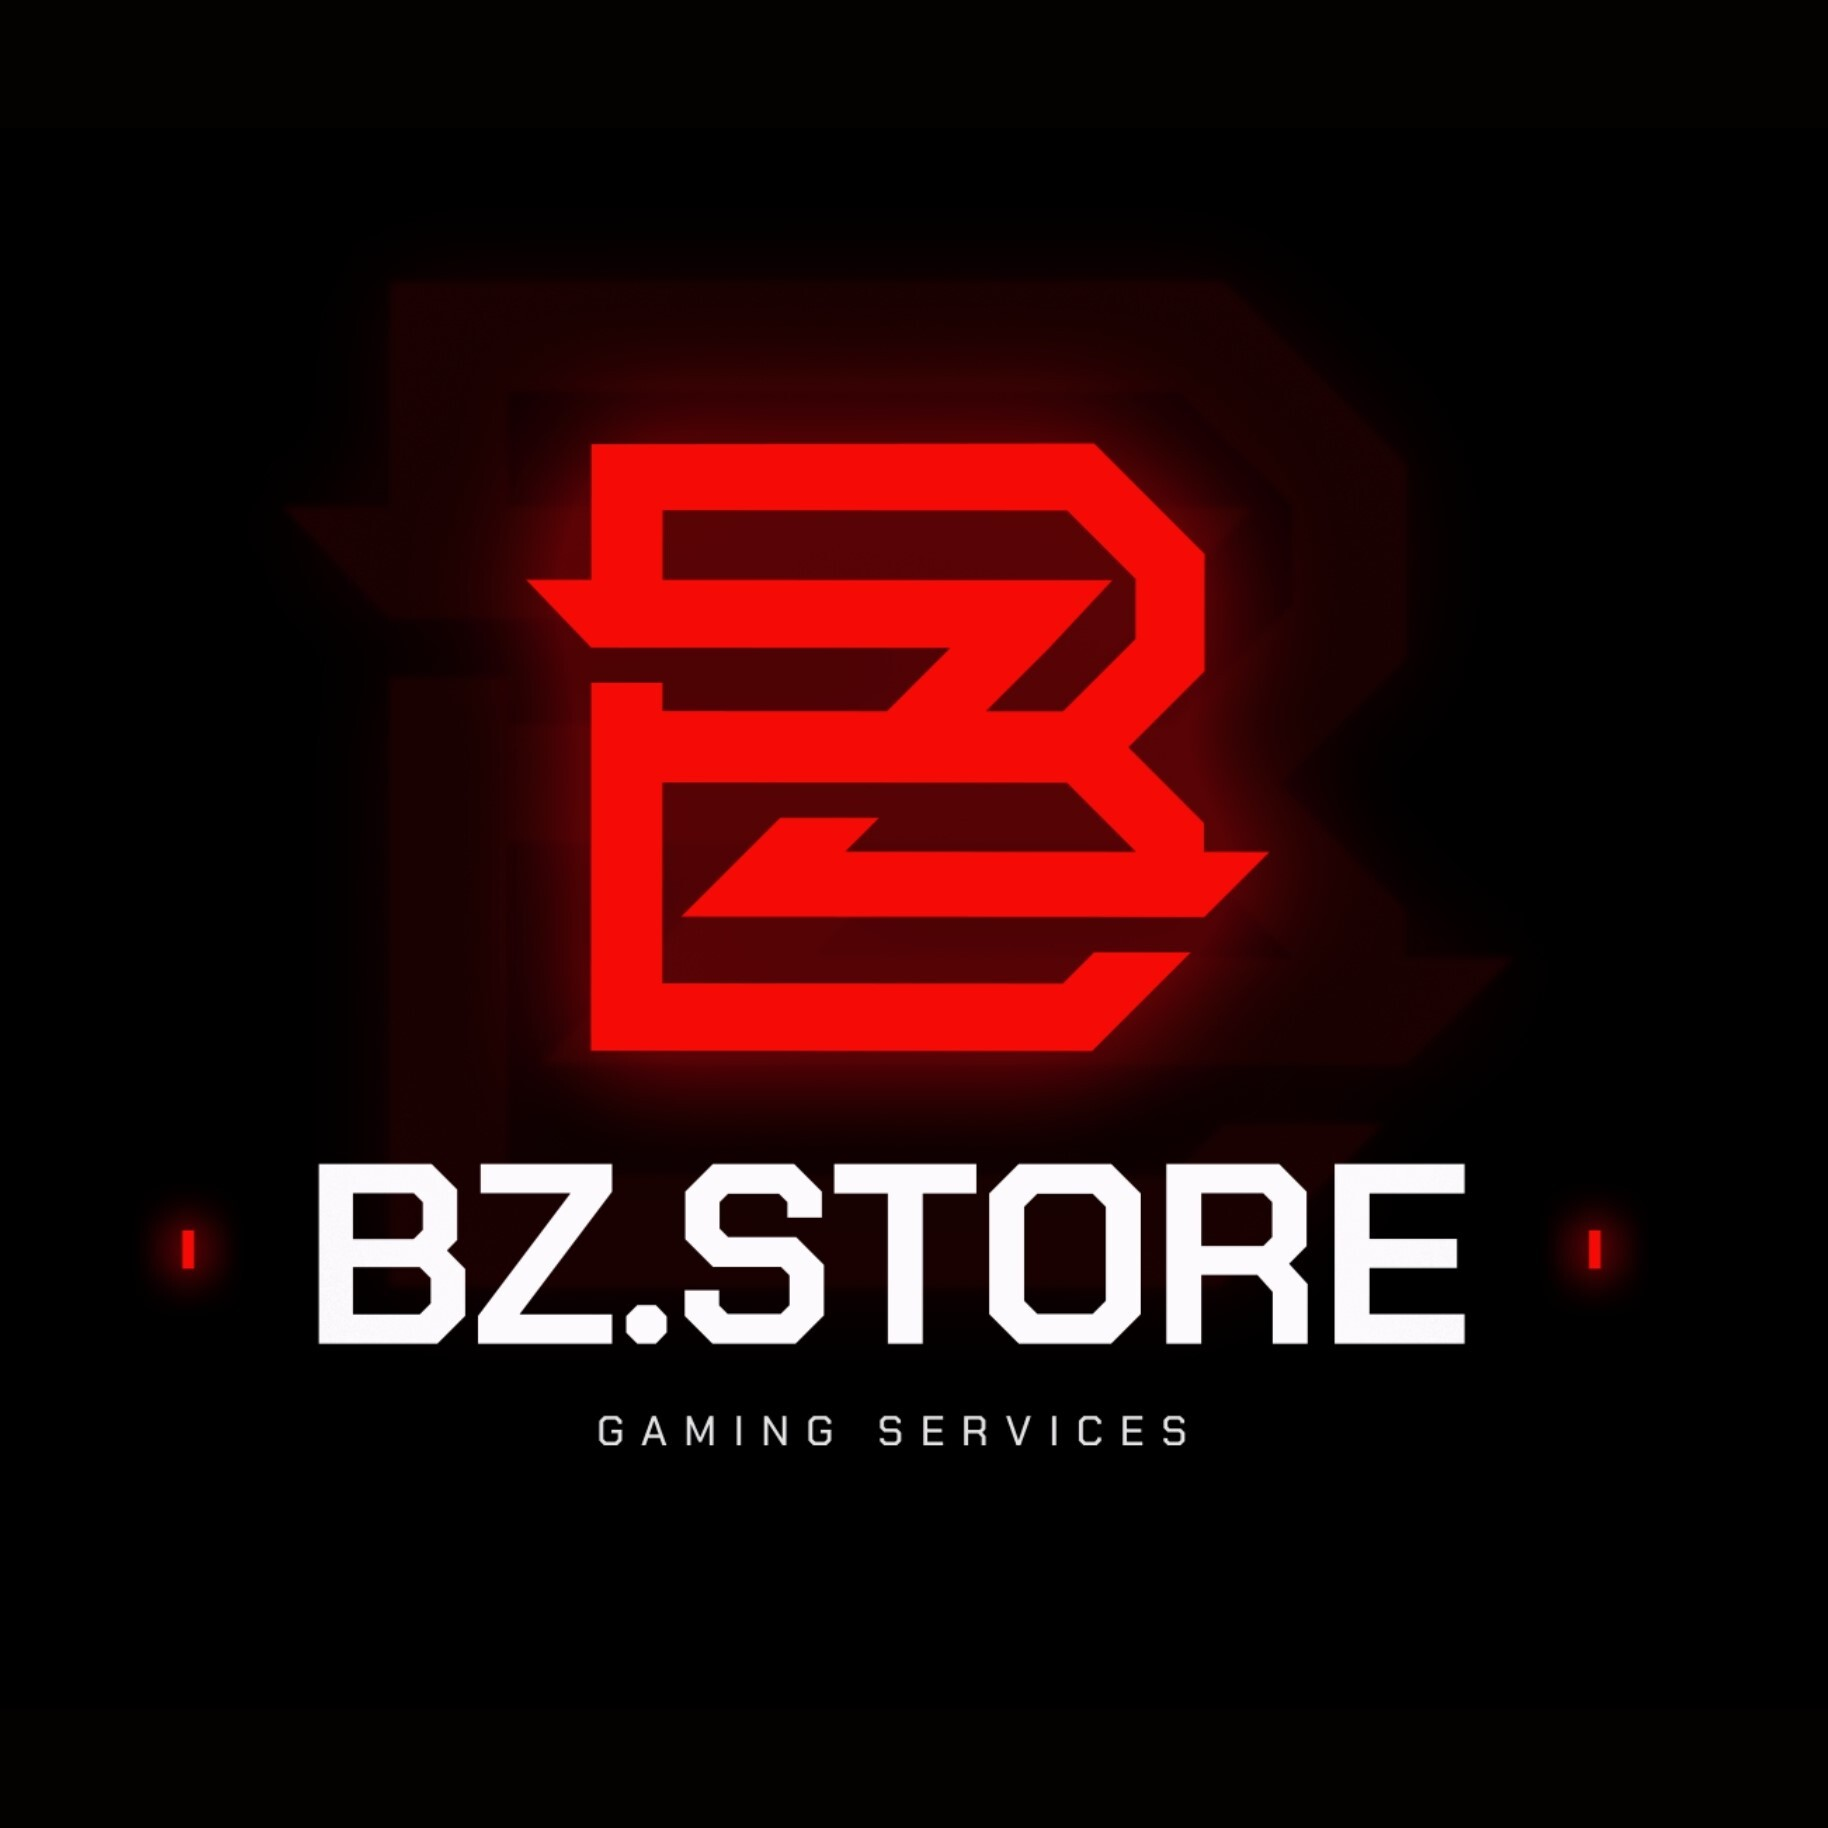 BZ.STORE